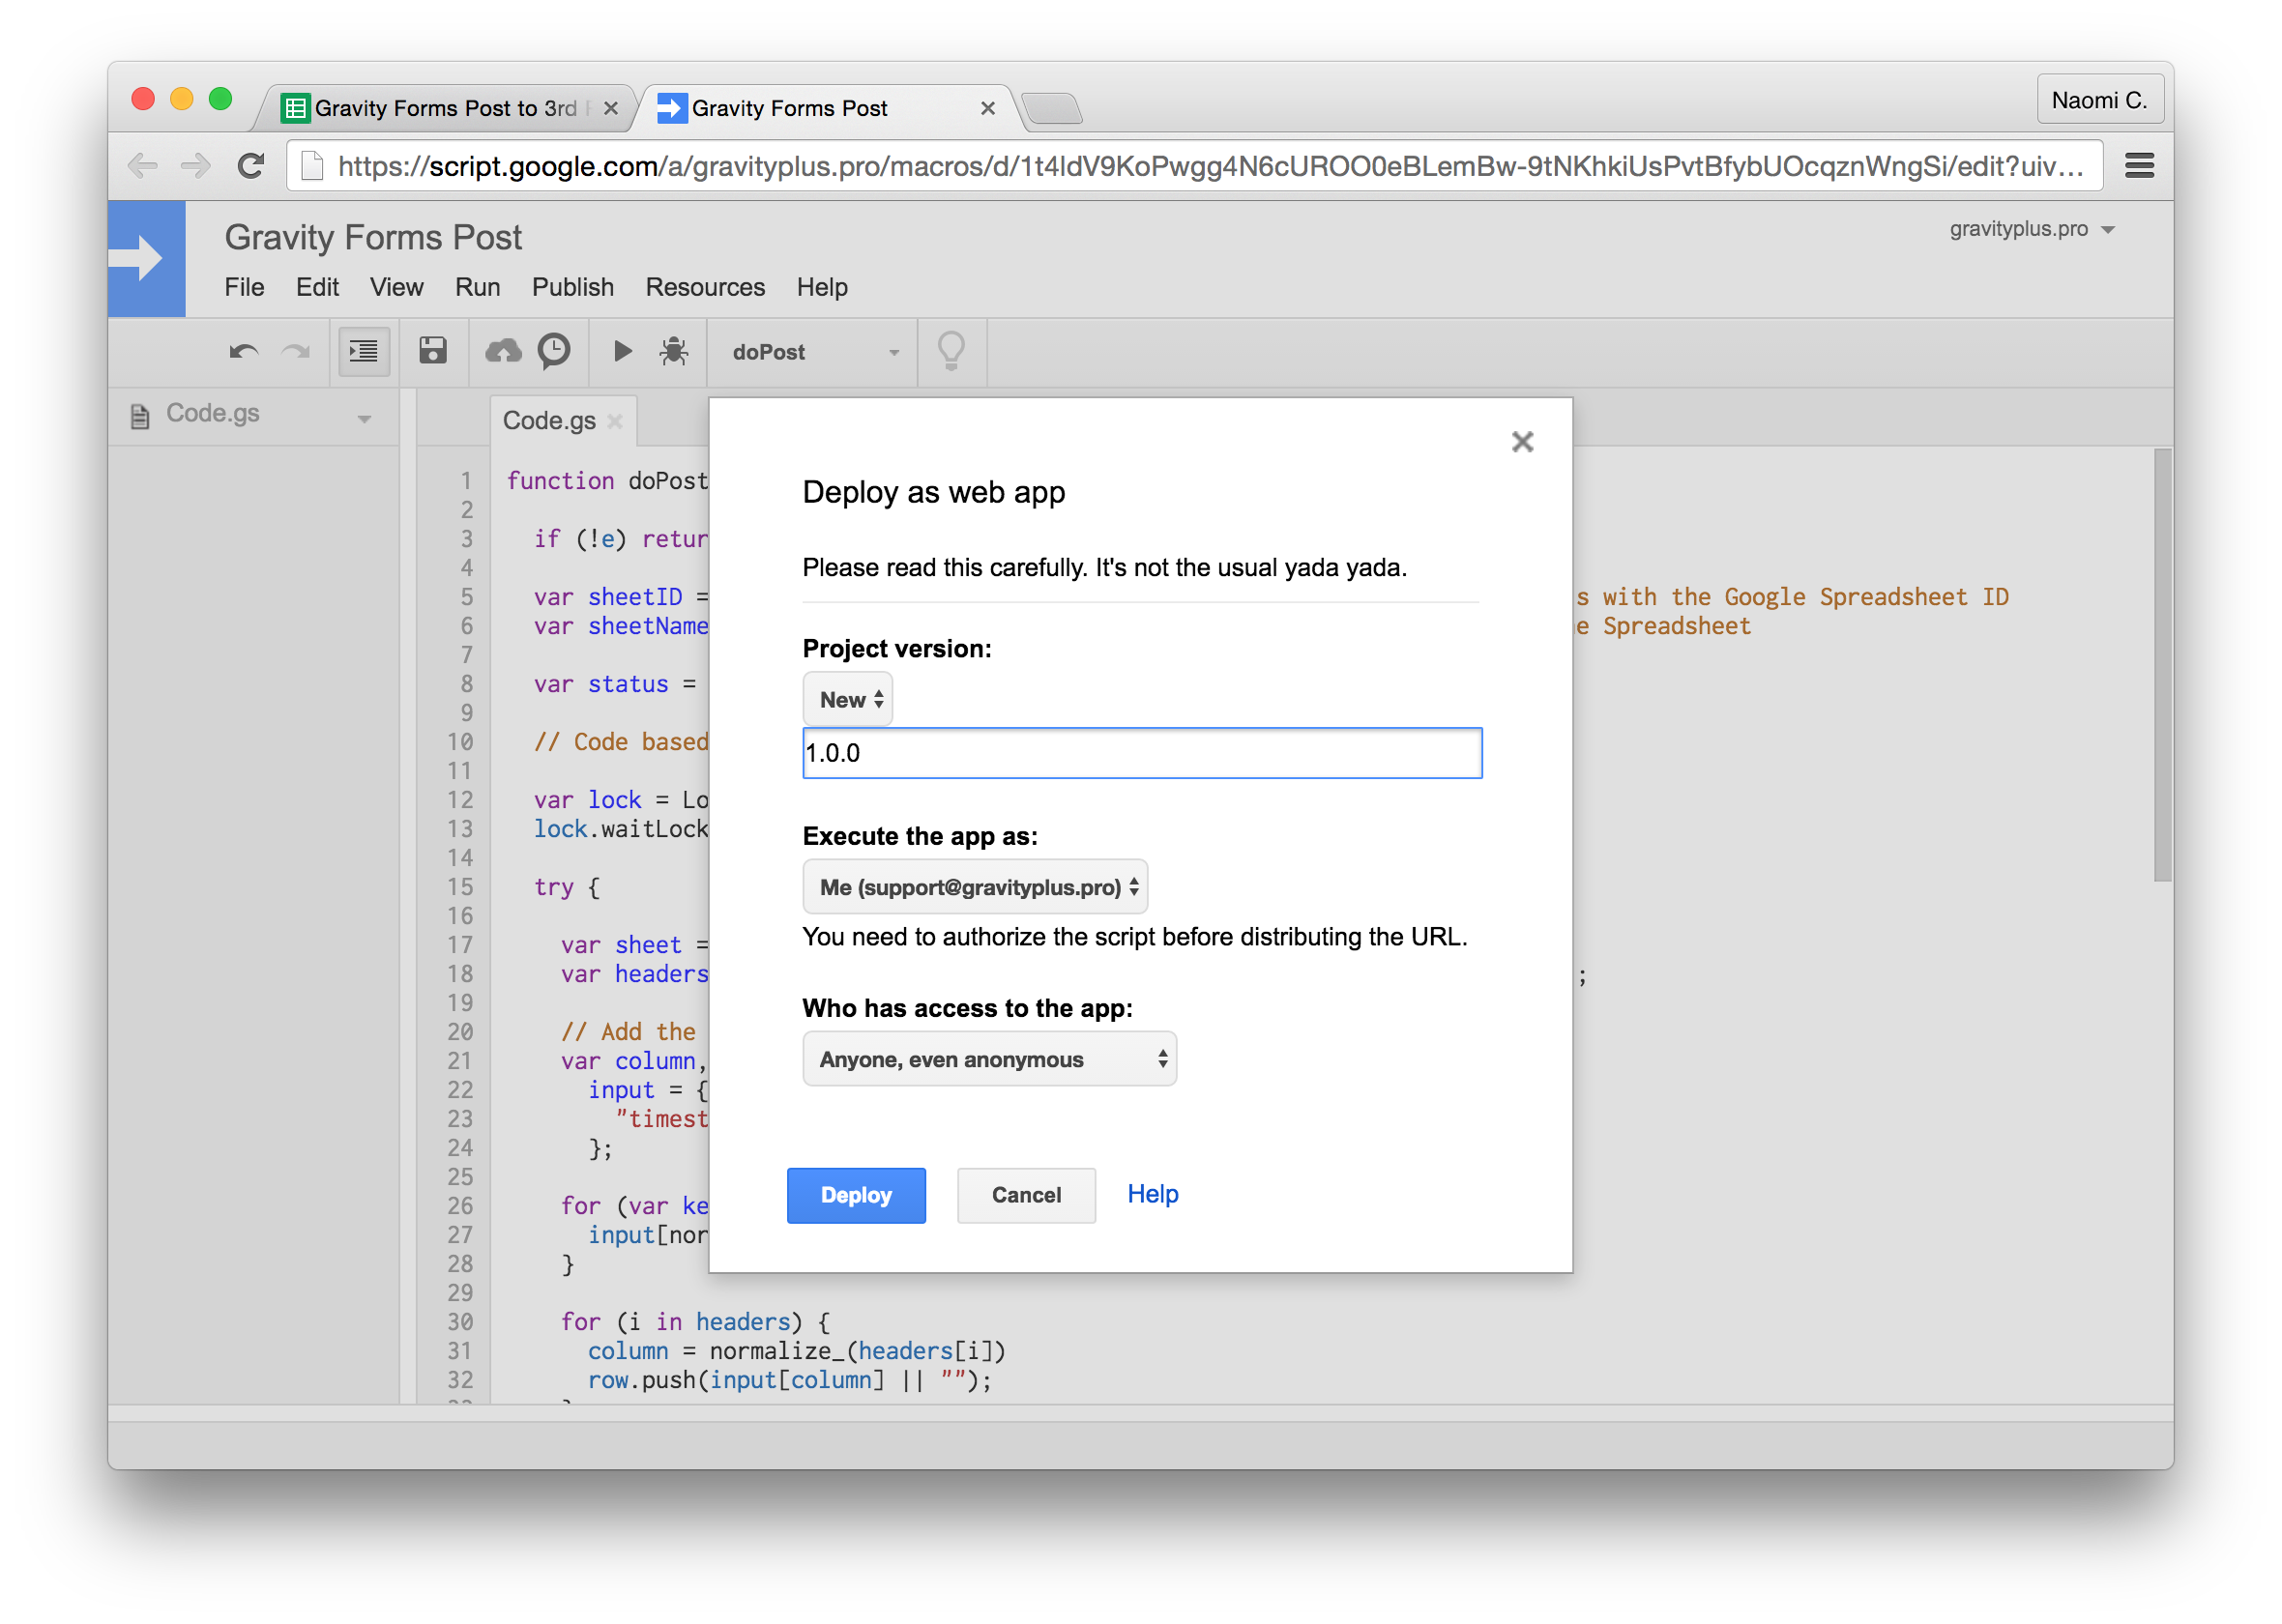 Gravity Forms to Google Sheets deploy info